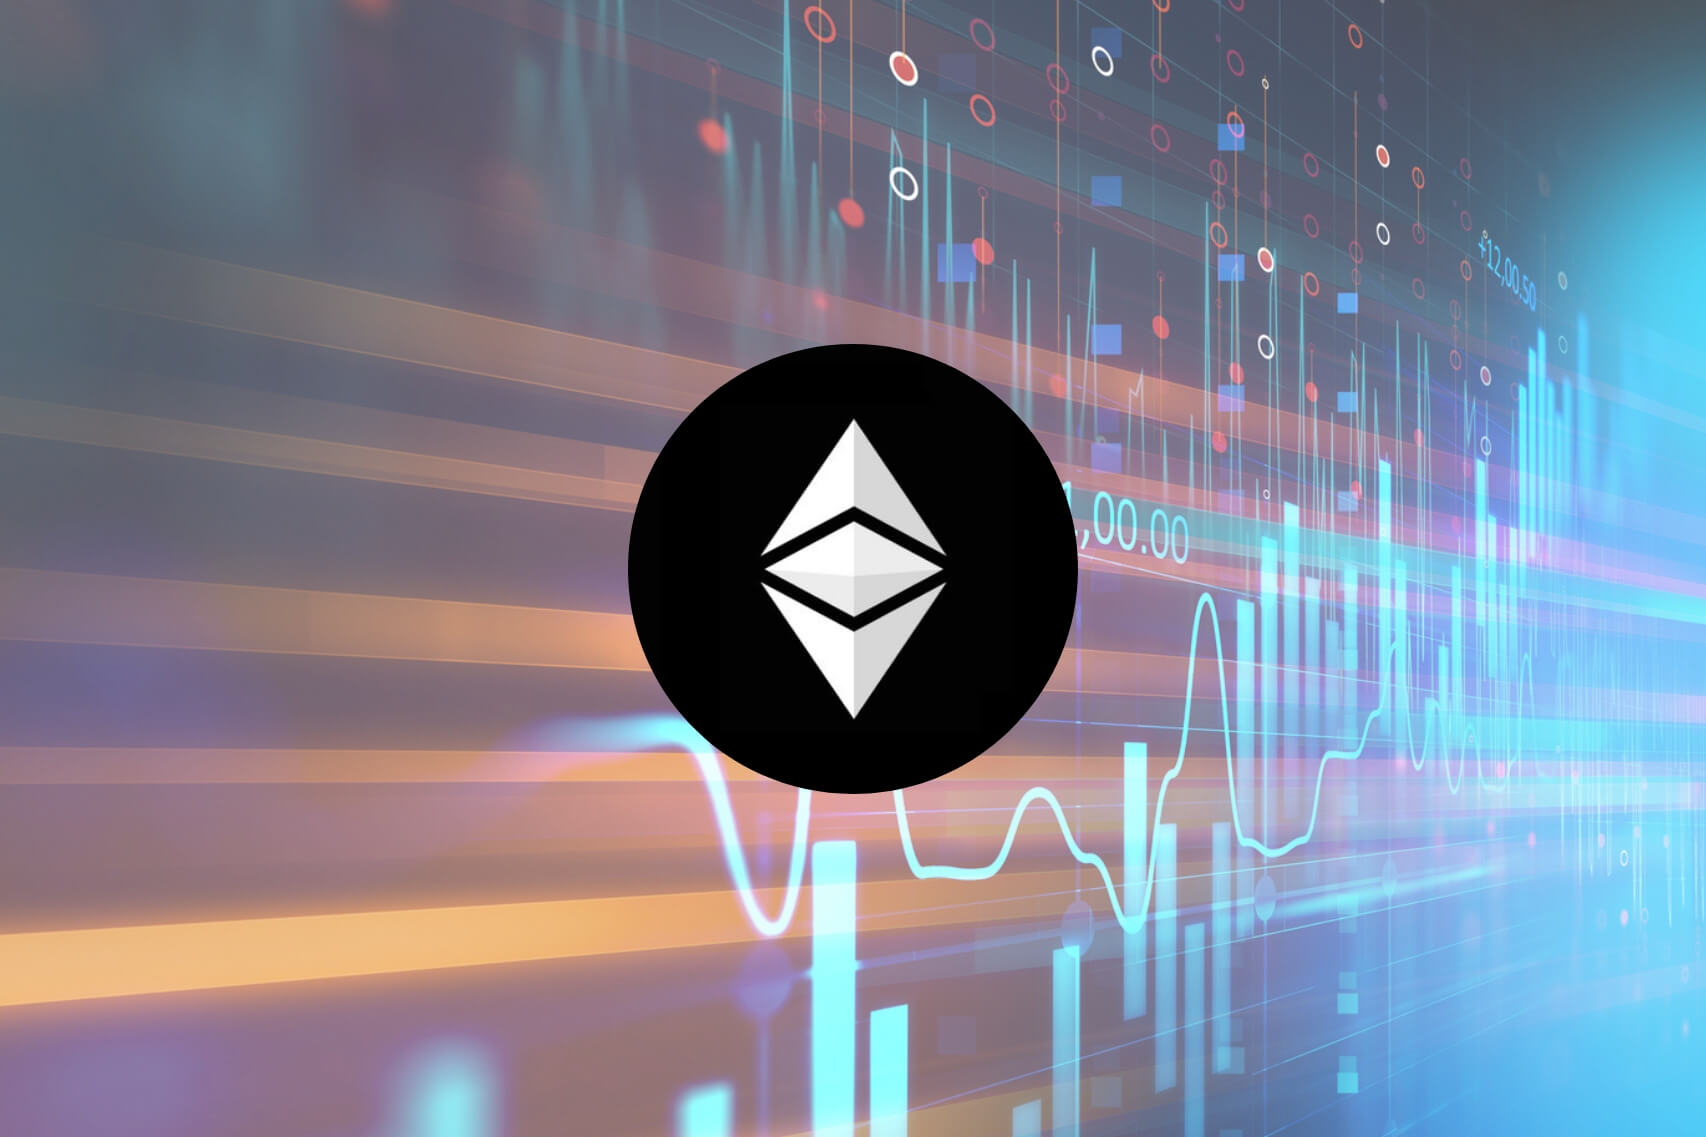 Ethereum Classic Price Analysis: ETC Rebounds to Break Above $5.00 Again